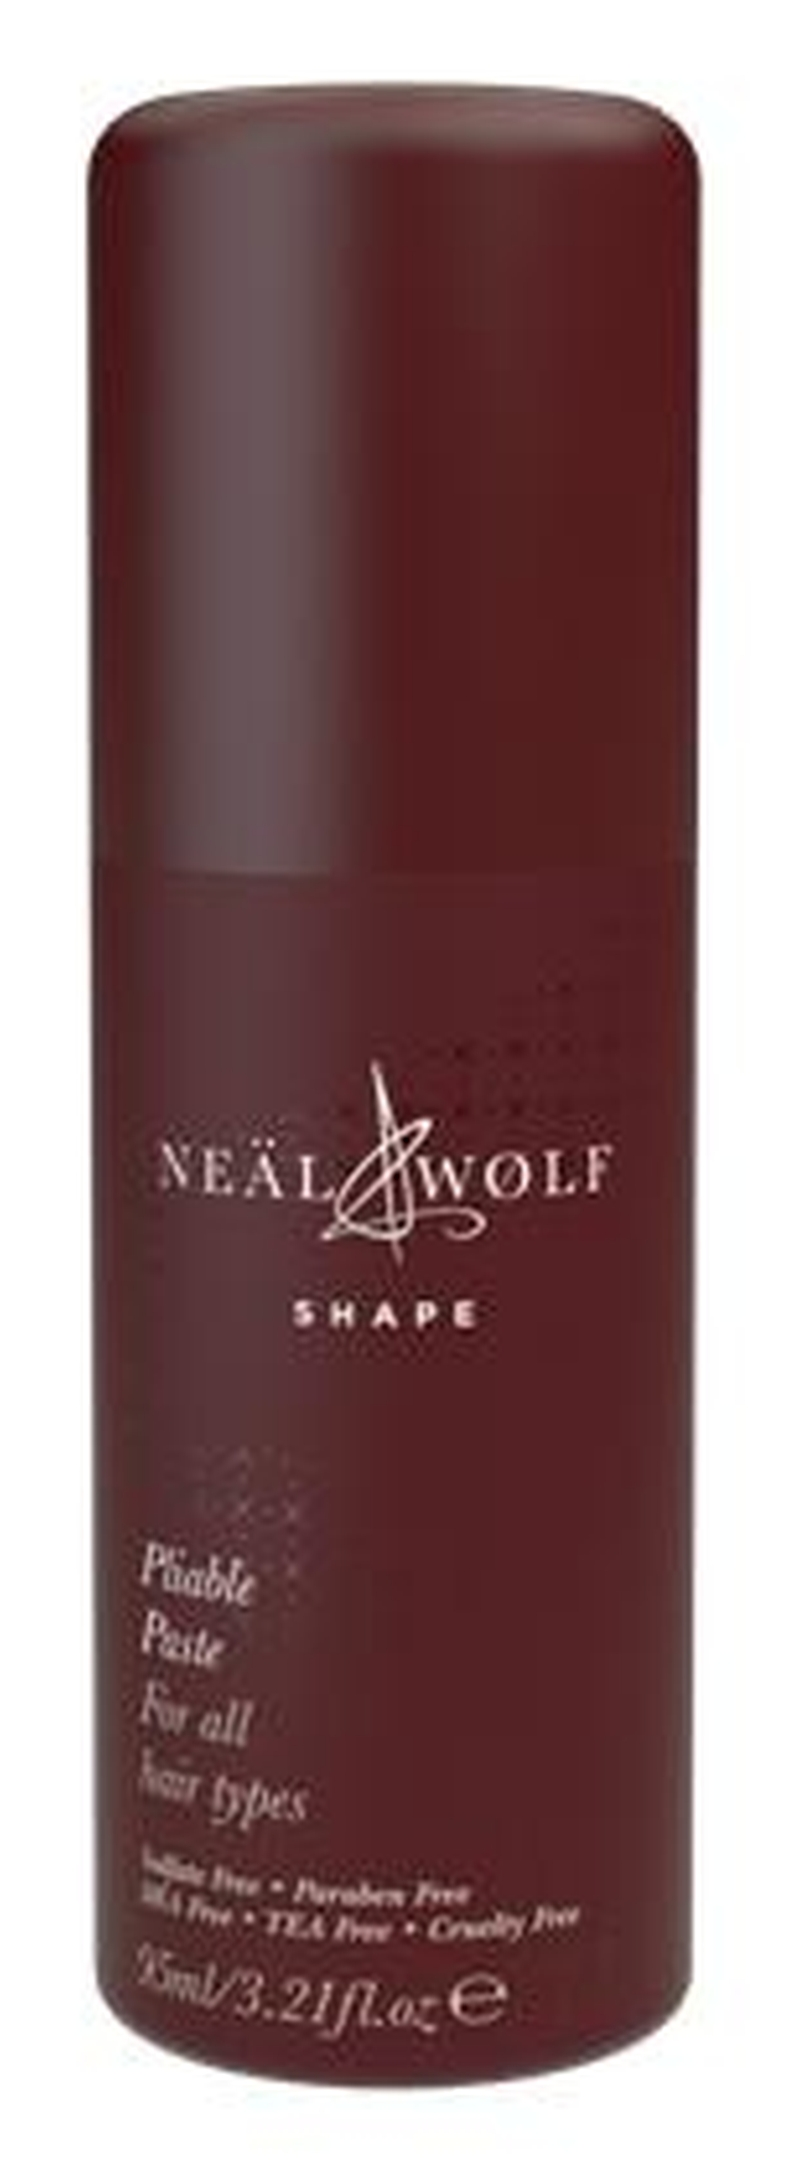 Neal and Wolf Shape Pliable Paste 95ml